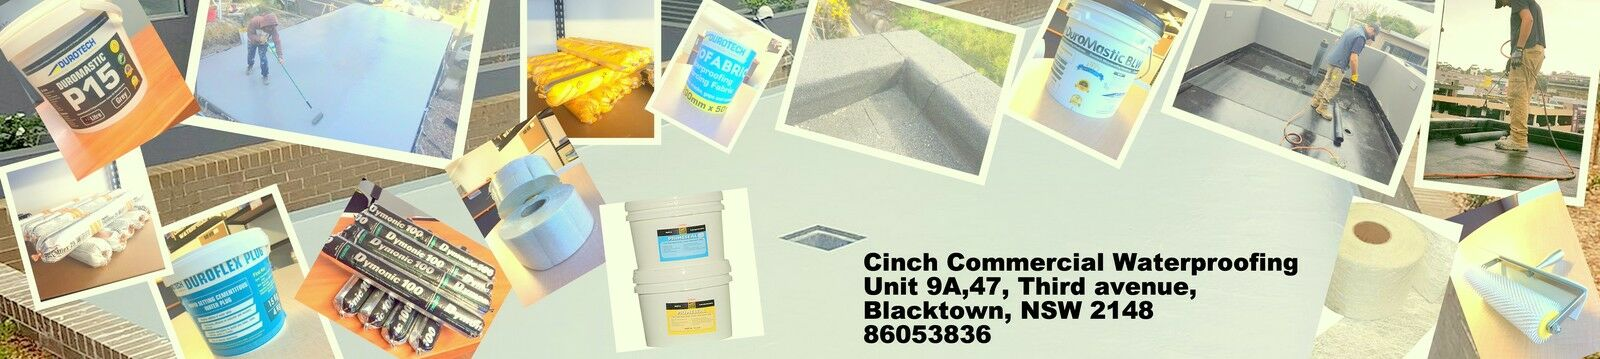 CC Waterproofing Supplies